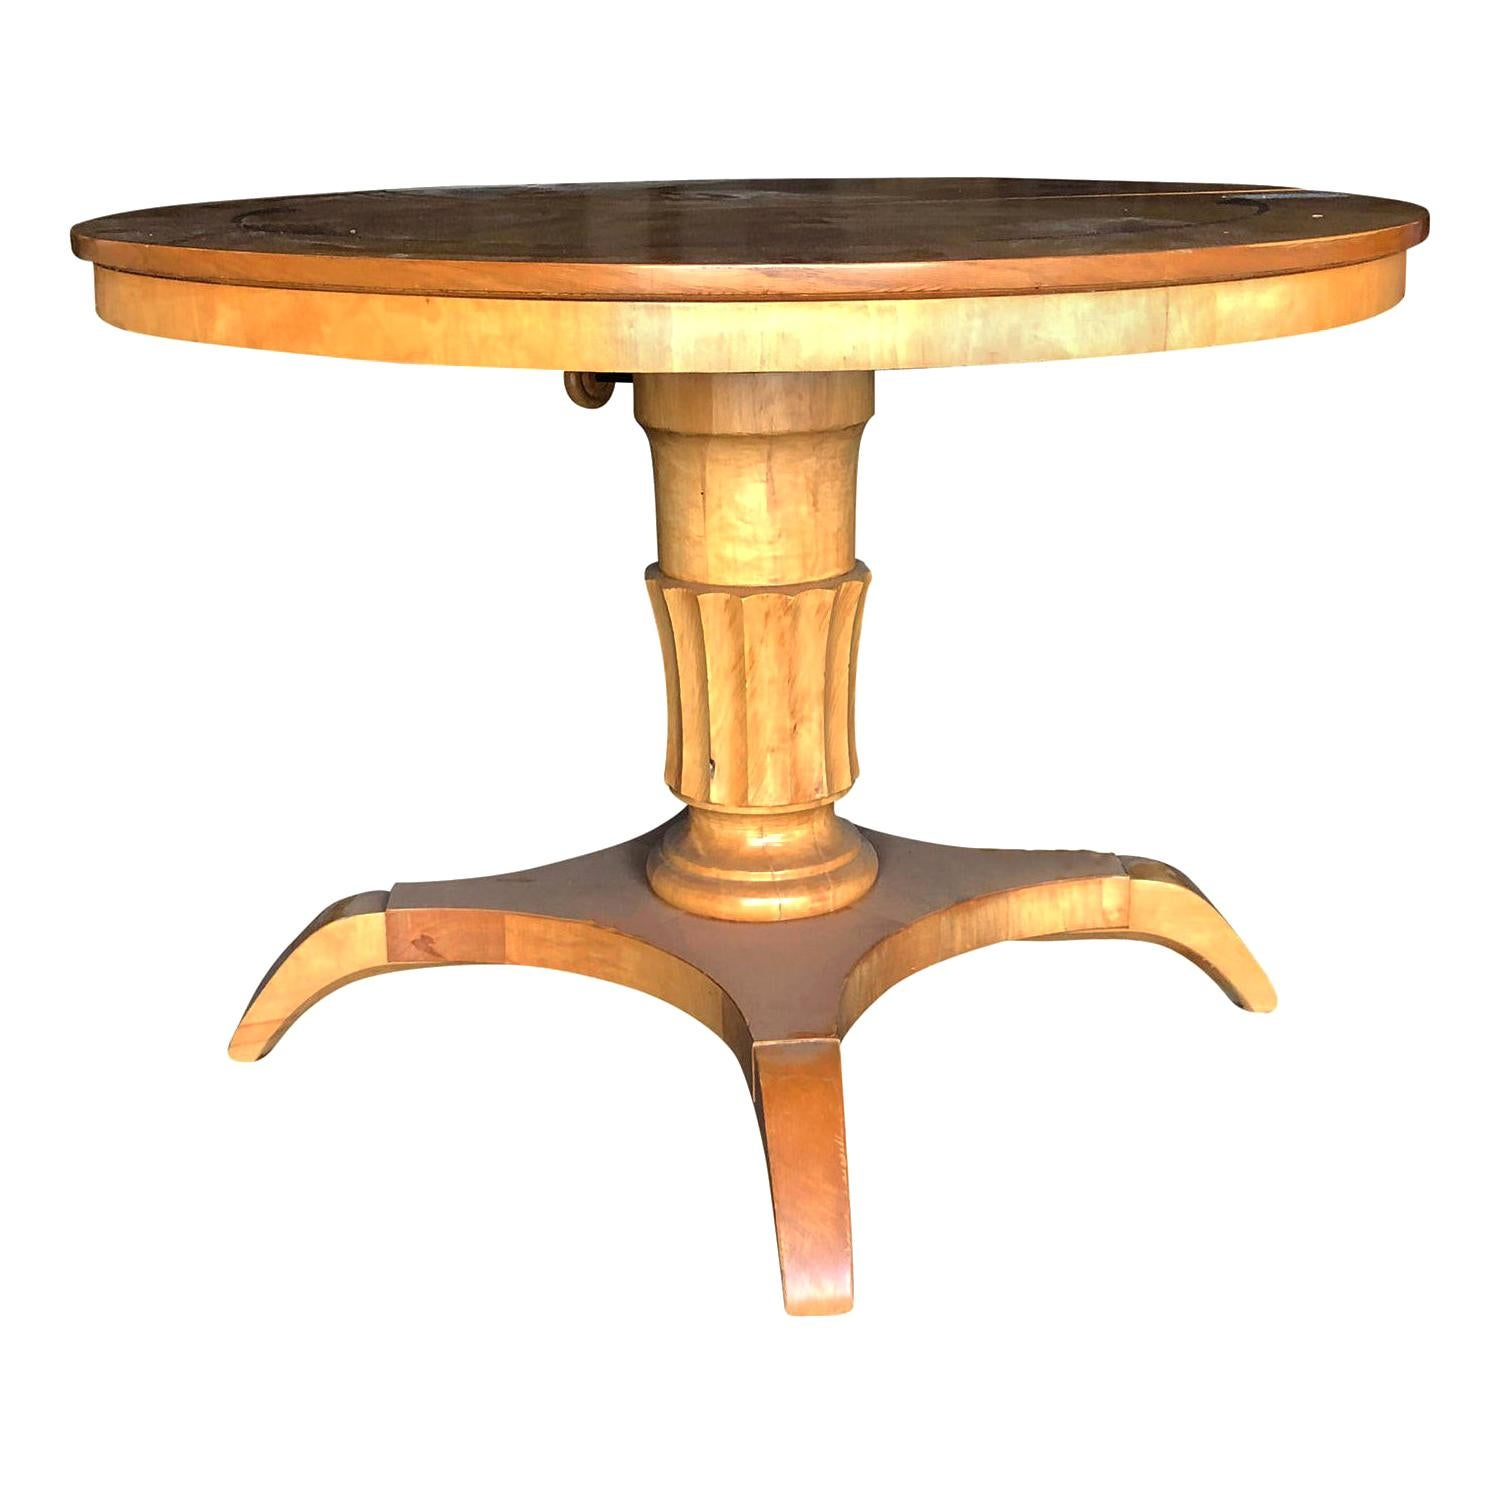 20th Century Round Pedestal Table, Swedish Birchwood Coffee Table